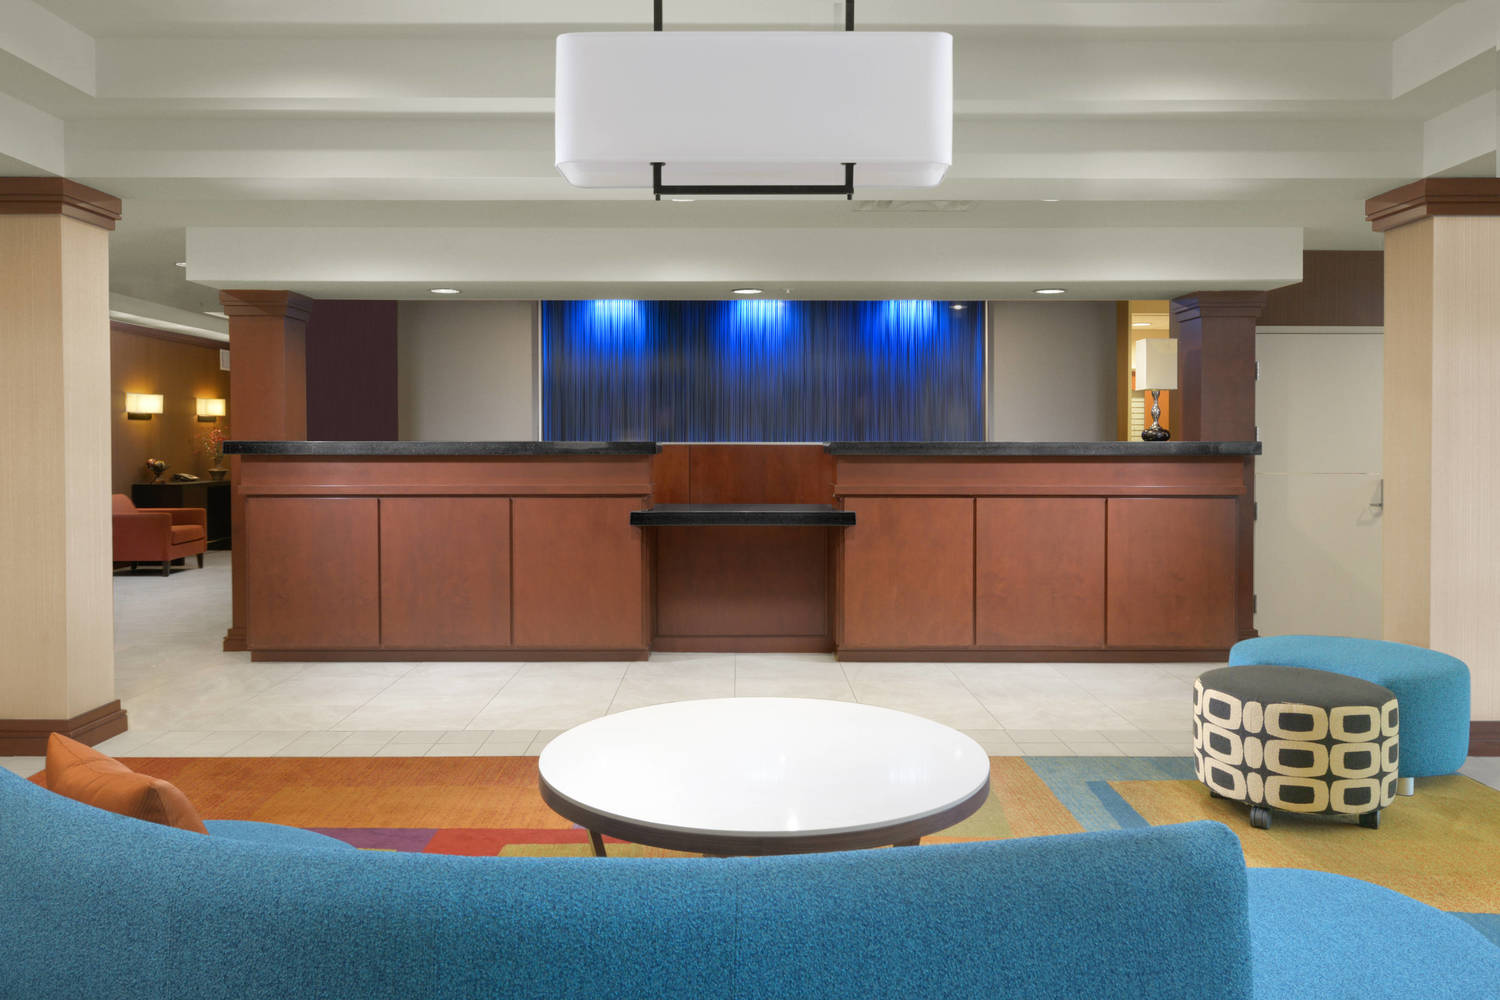 Fairfield Inn Amp Suites By Marriott Dallas Plano The Colony